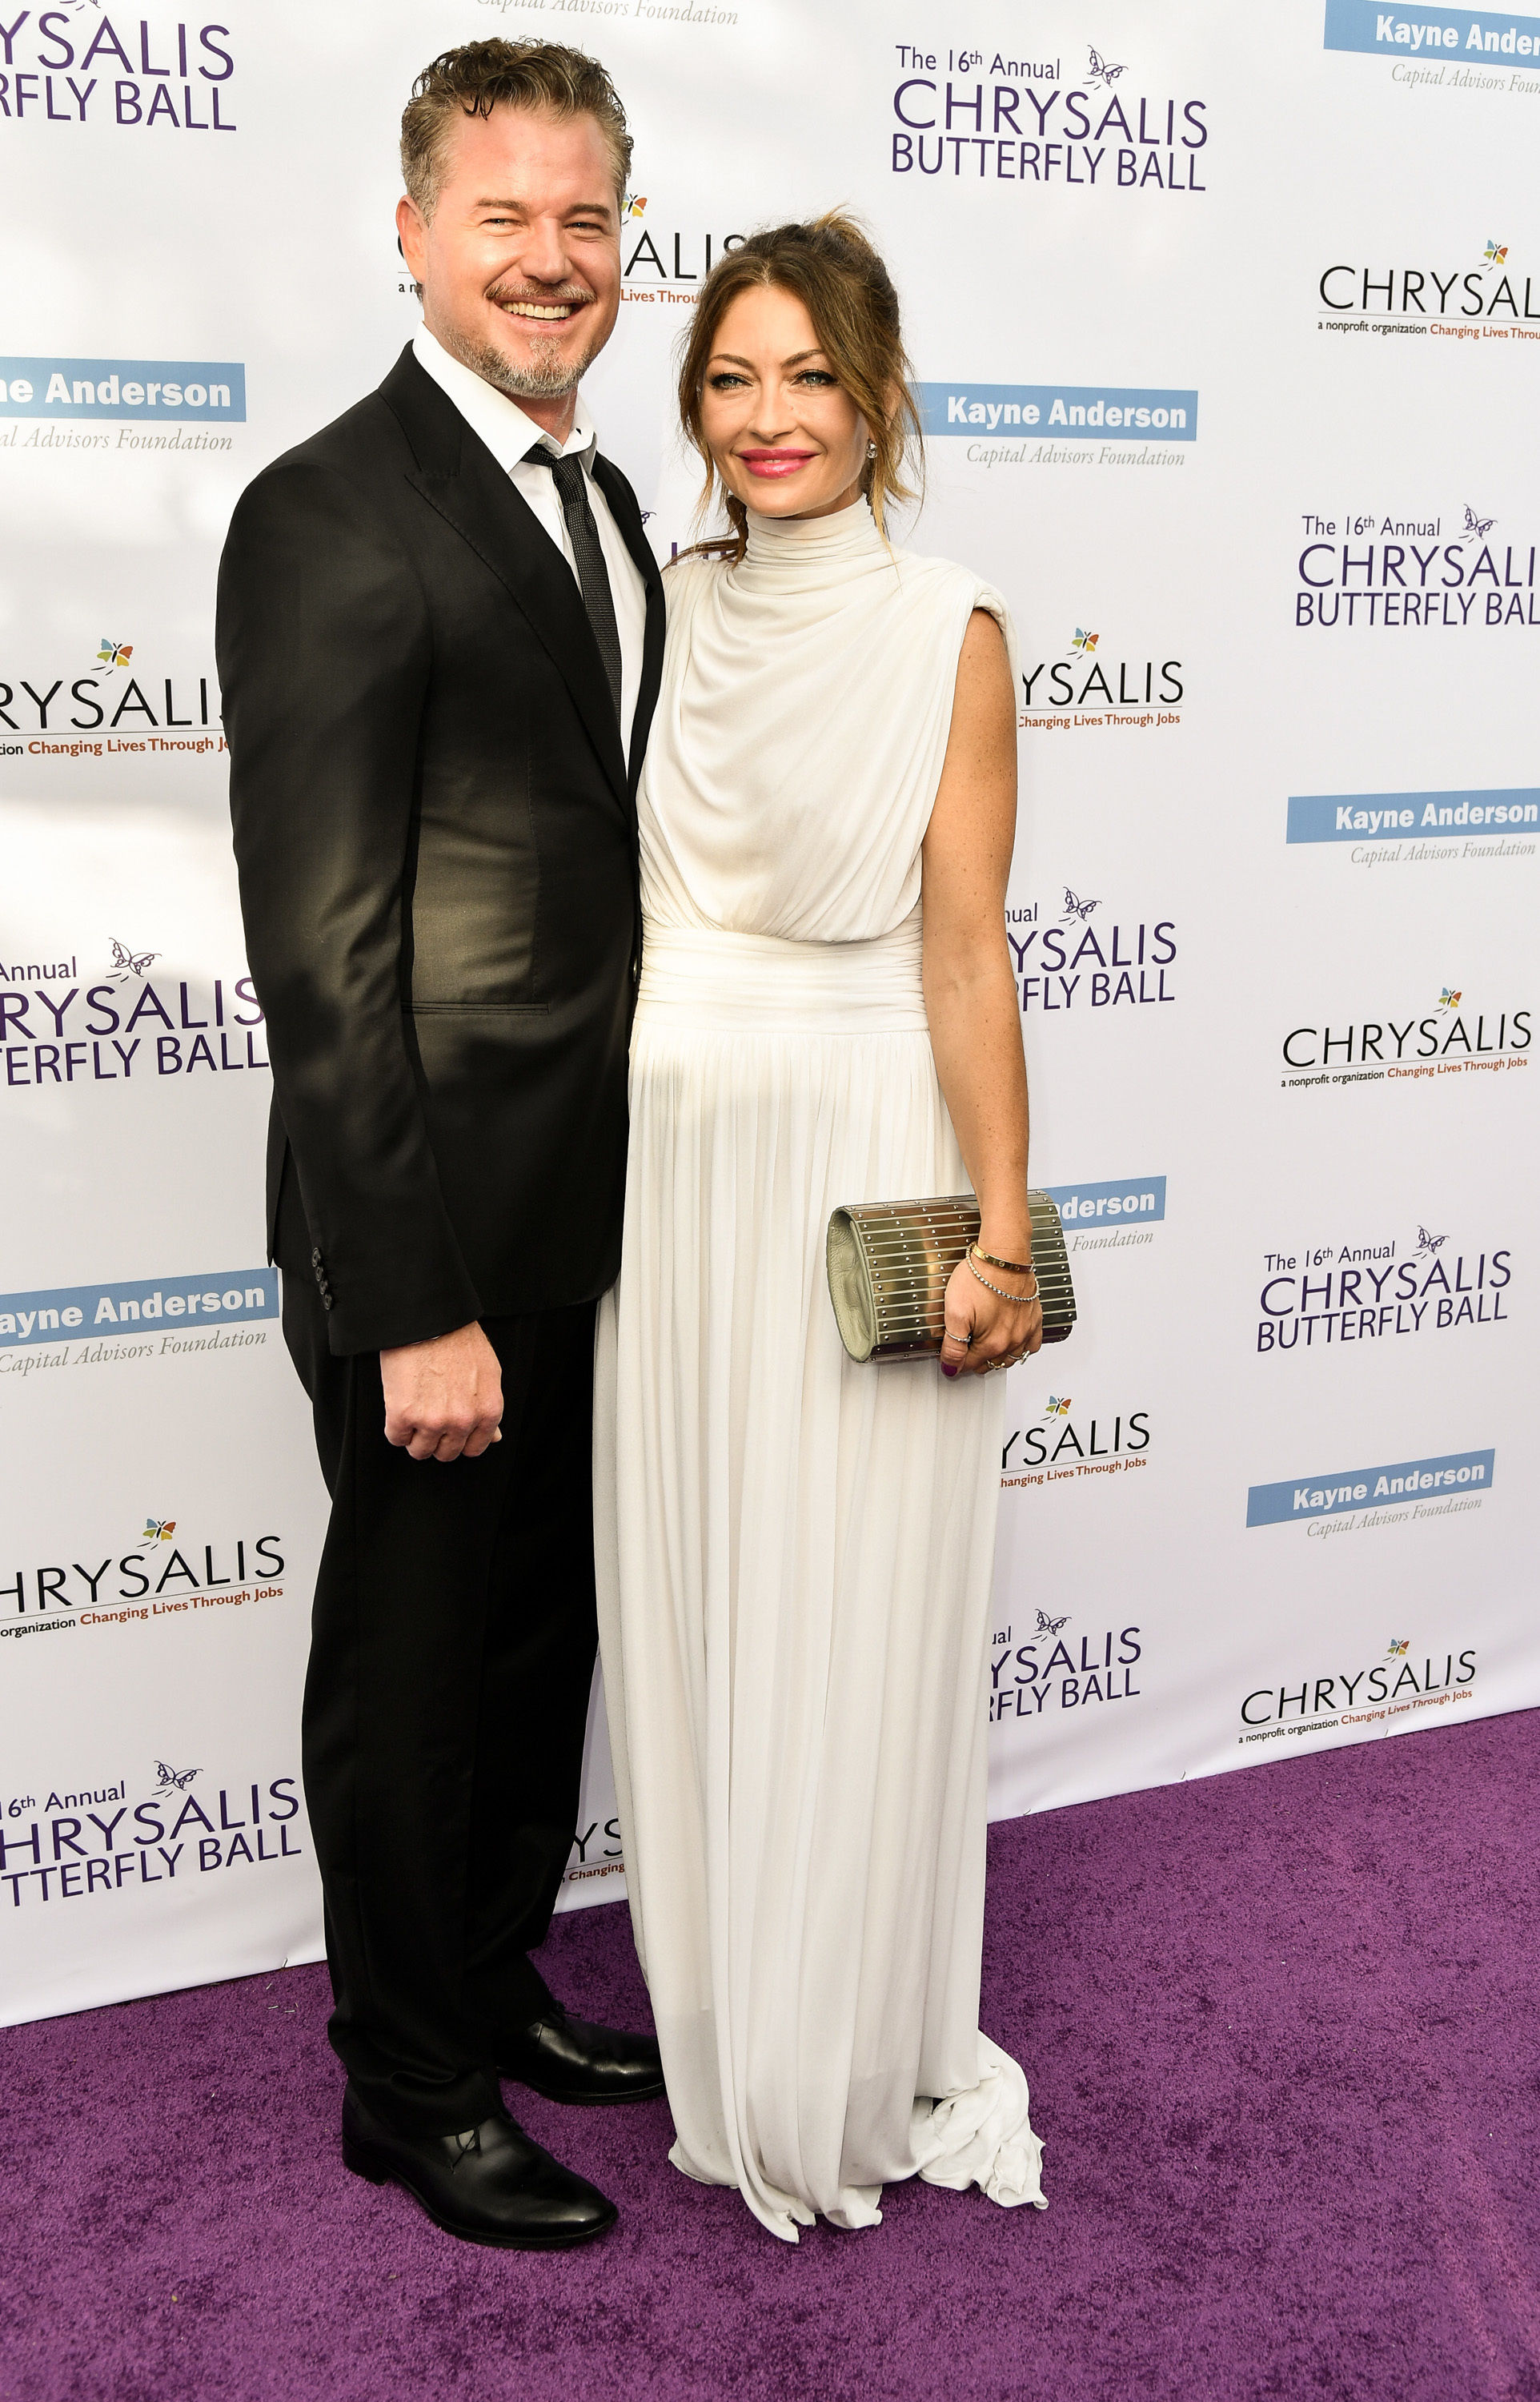 Eric Dane and Rebecca Gayheart attend the 16th Annual Chrysalis Butterfly Ball in Los Angeles on June 3, 2017.